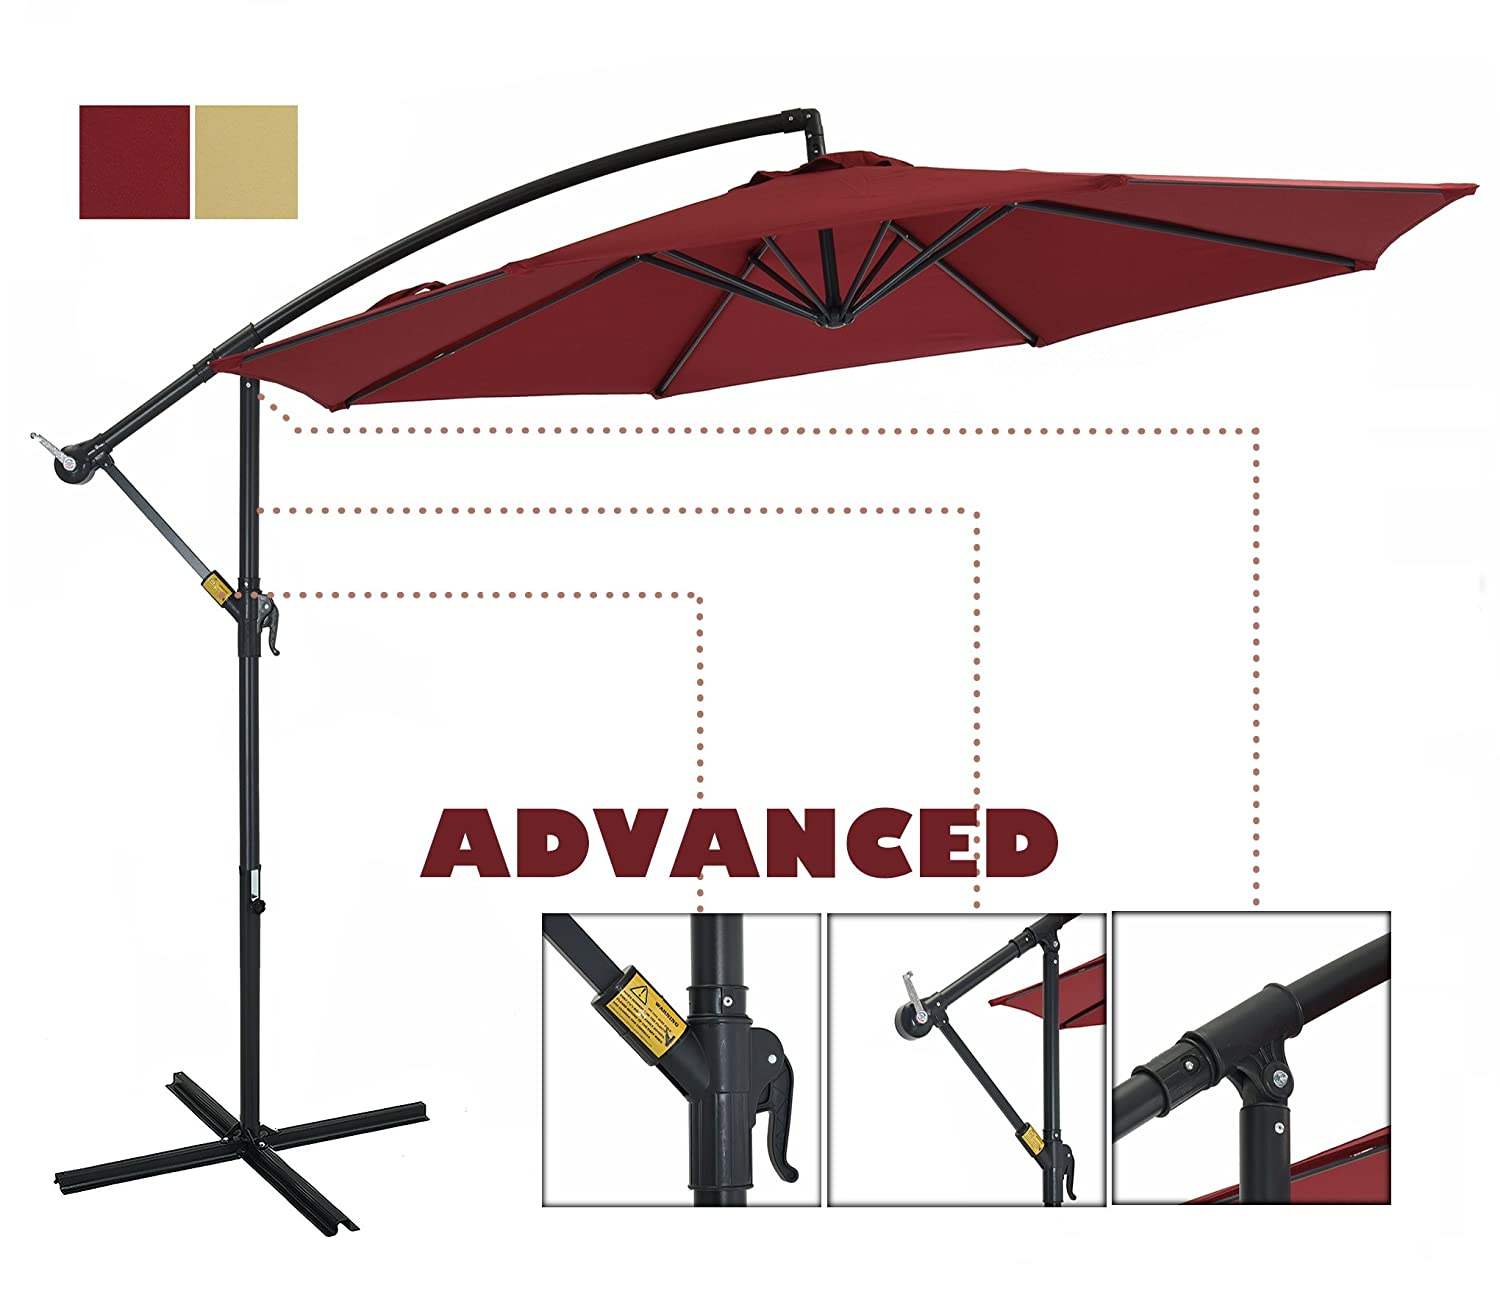 The Best Patio Umbrellas For Your Garden Or Backyard: Reviews & Buying Guide 10